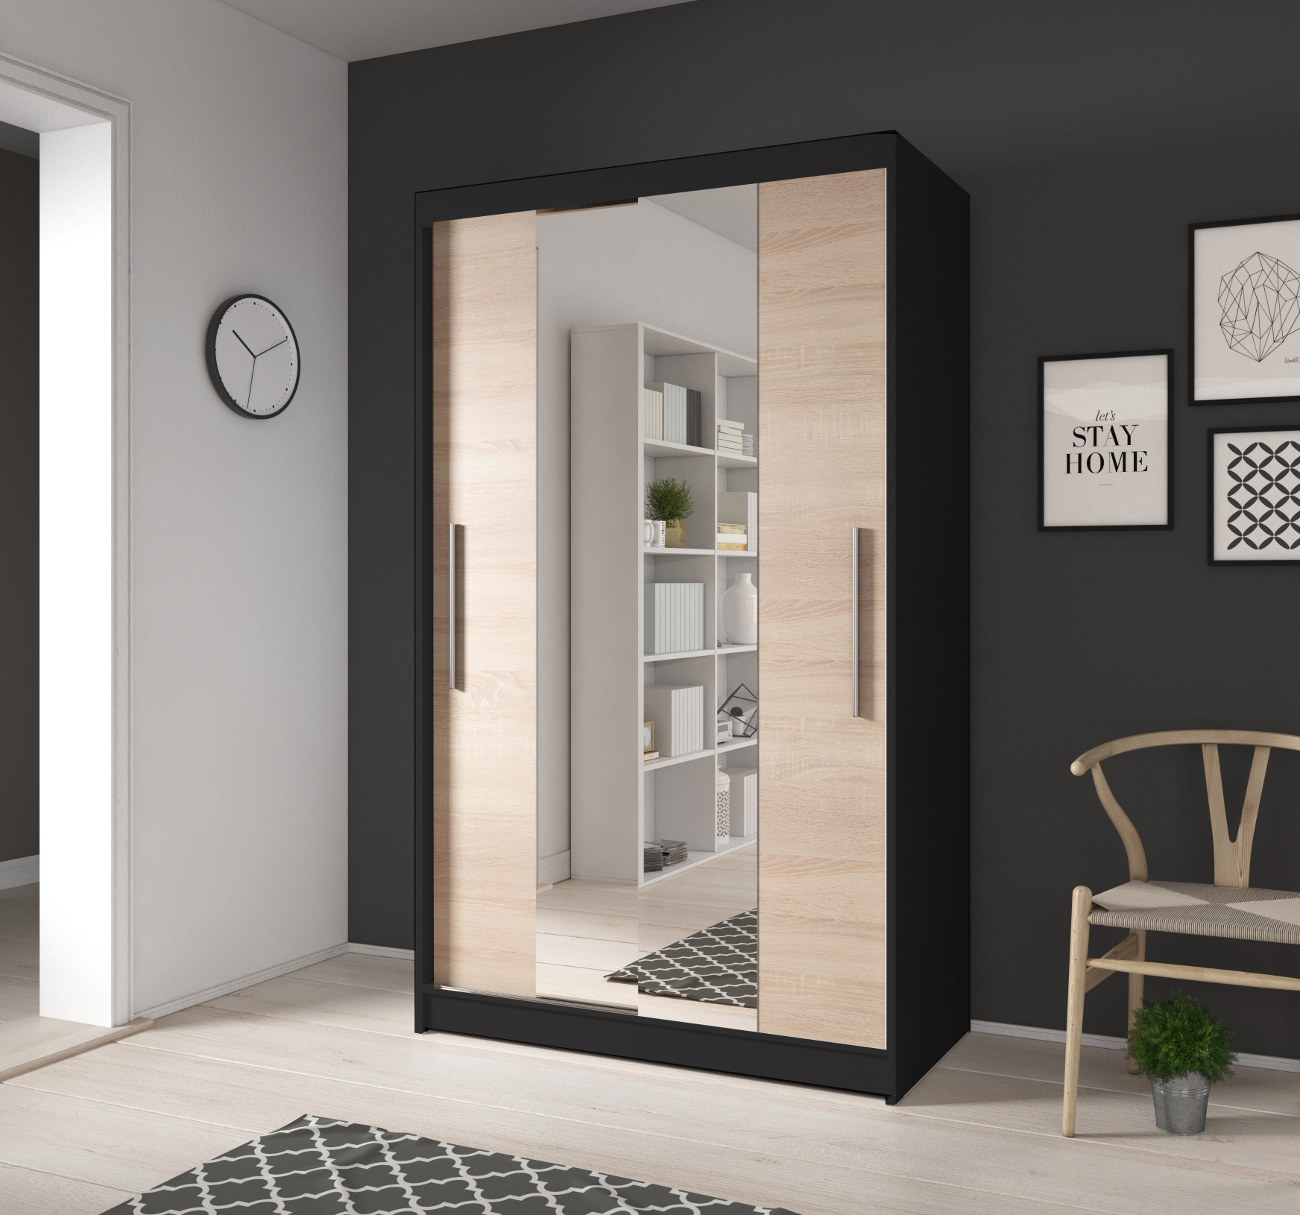 kleiner kleiderschrank mit spiegel schiebet ren beige schwarz 120 cm noah01 ebay. Black Bedroom Furniture Sets. Home Design Ideas